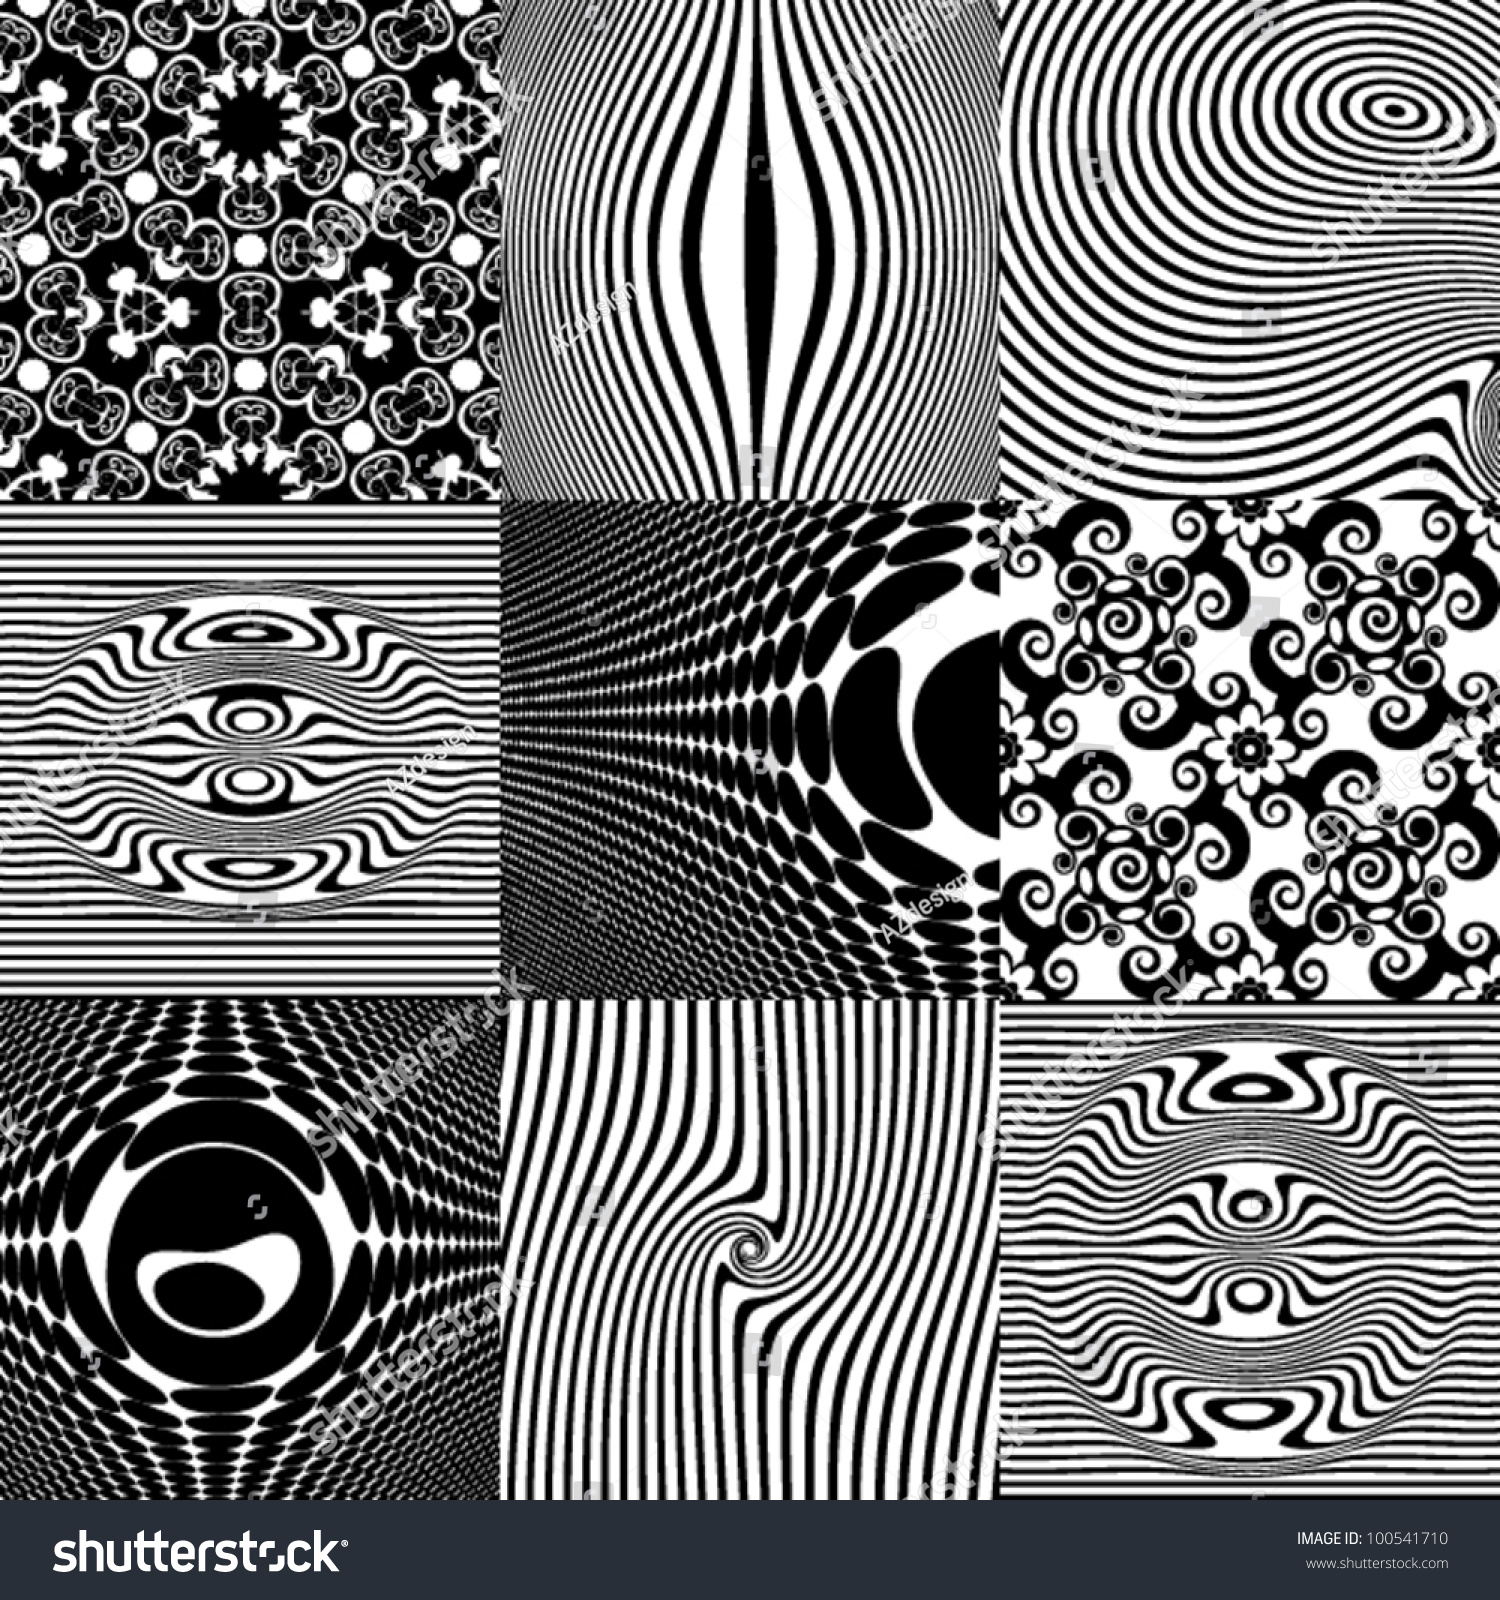 optical illusions abstract patterns vector elements shutterstock vectors